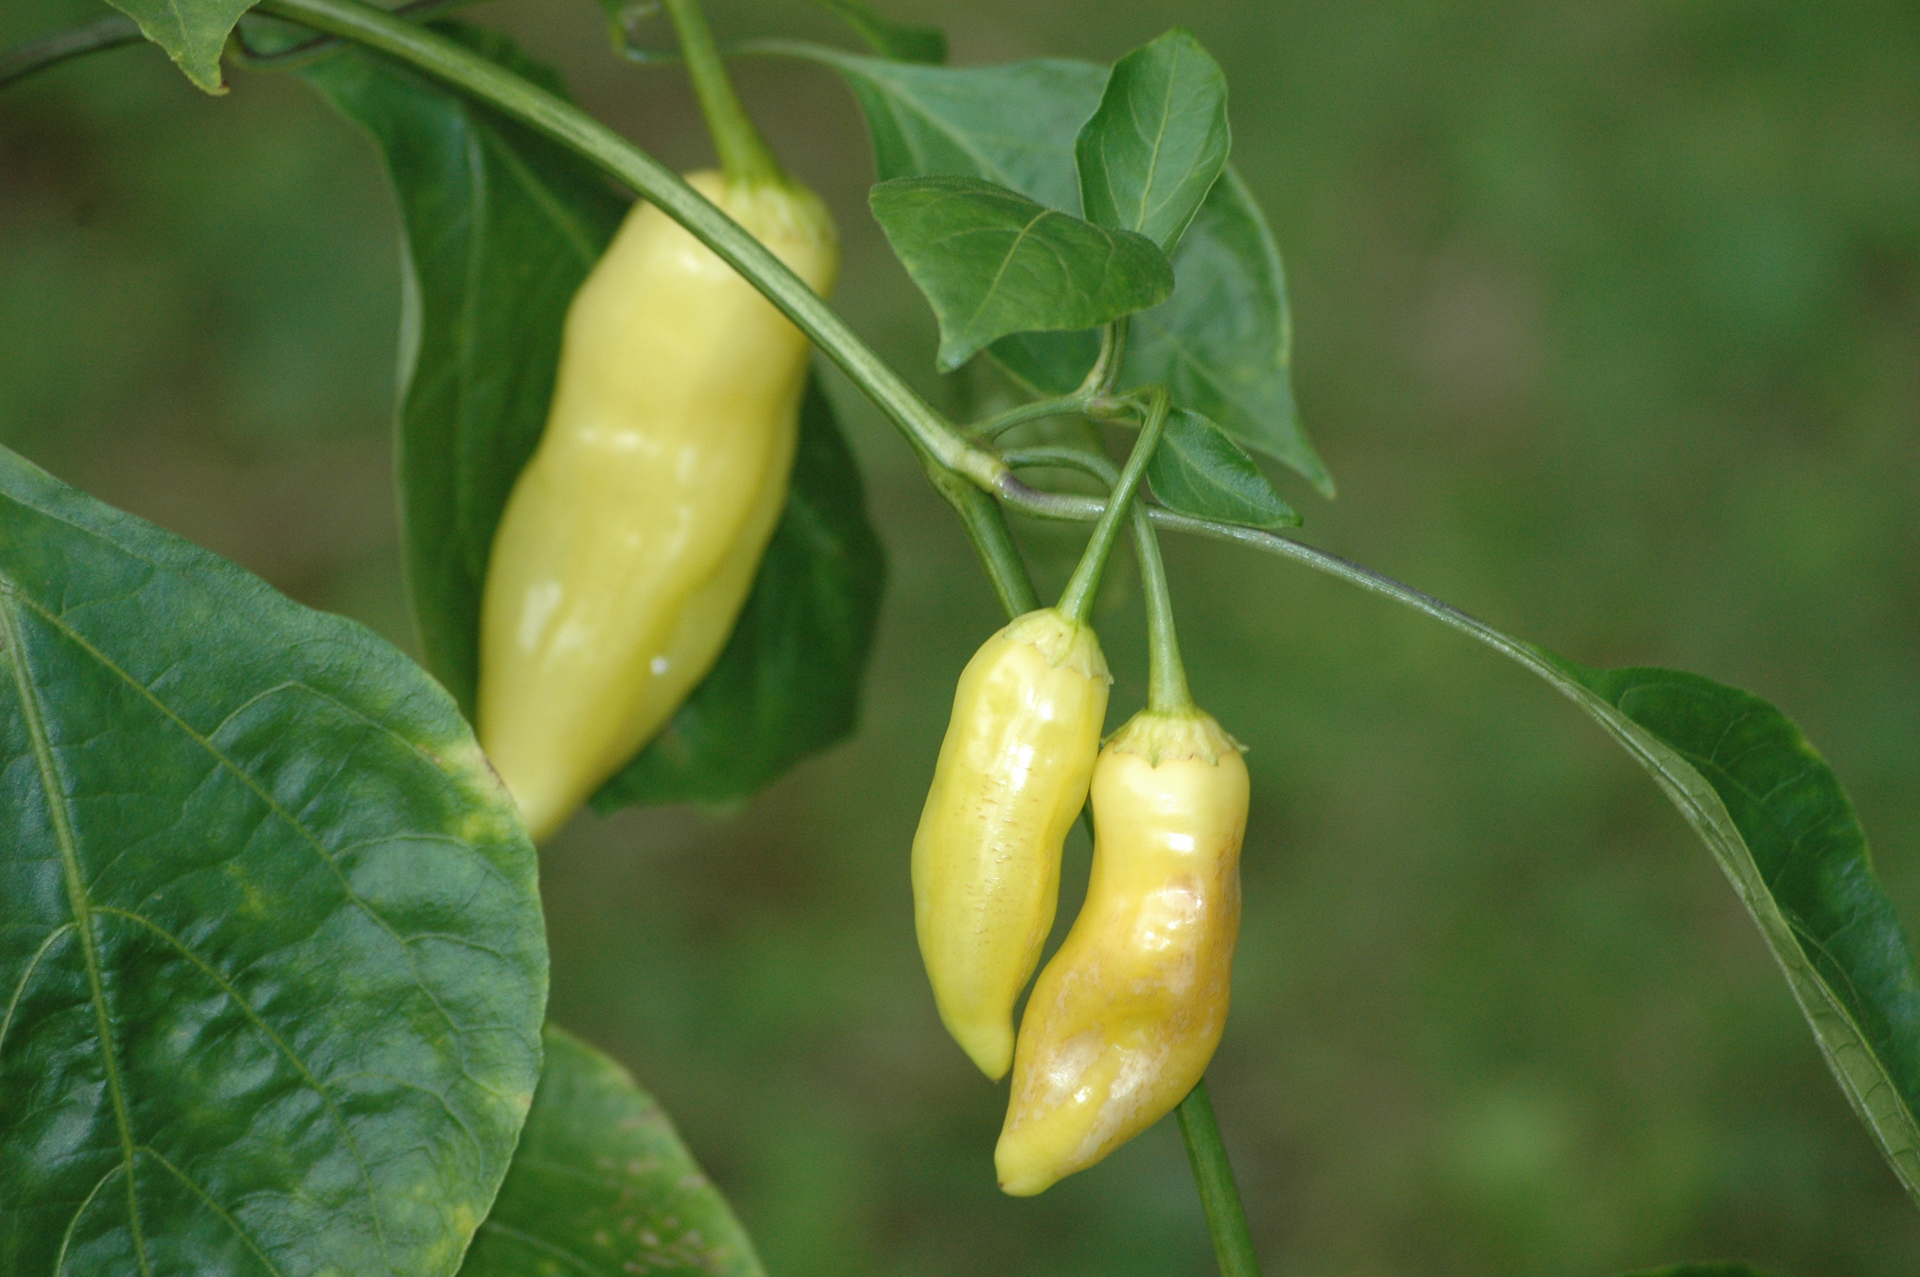 VI027494 - Capsicum annuum - Chilisorte